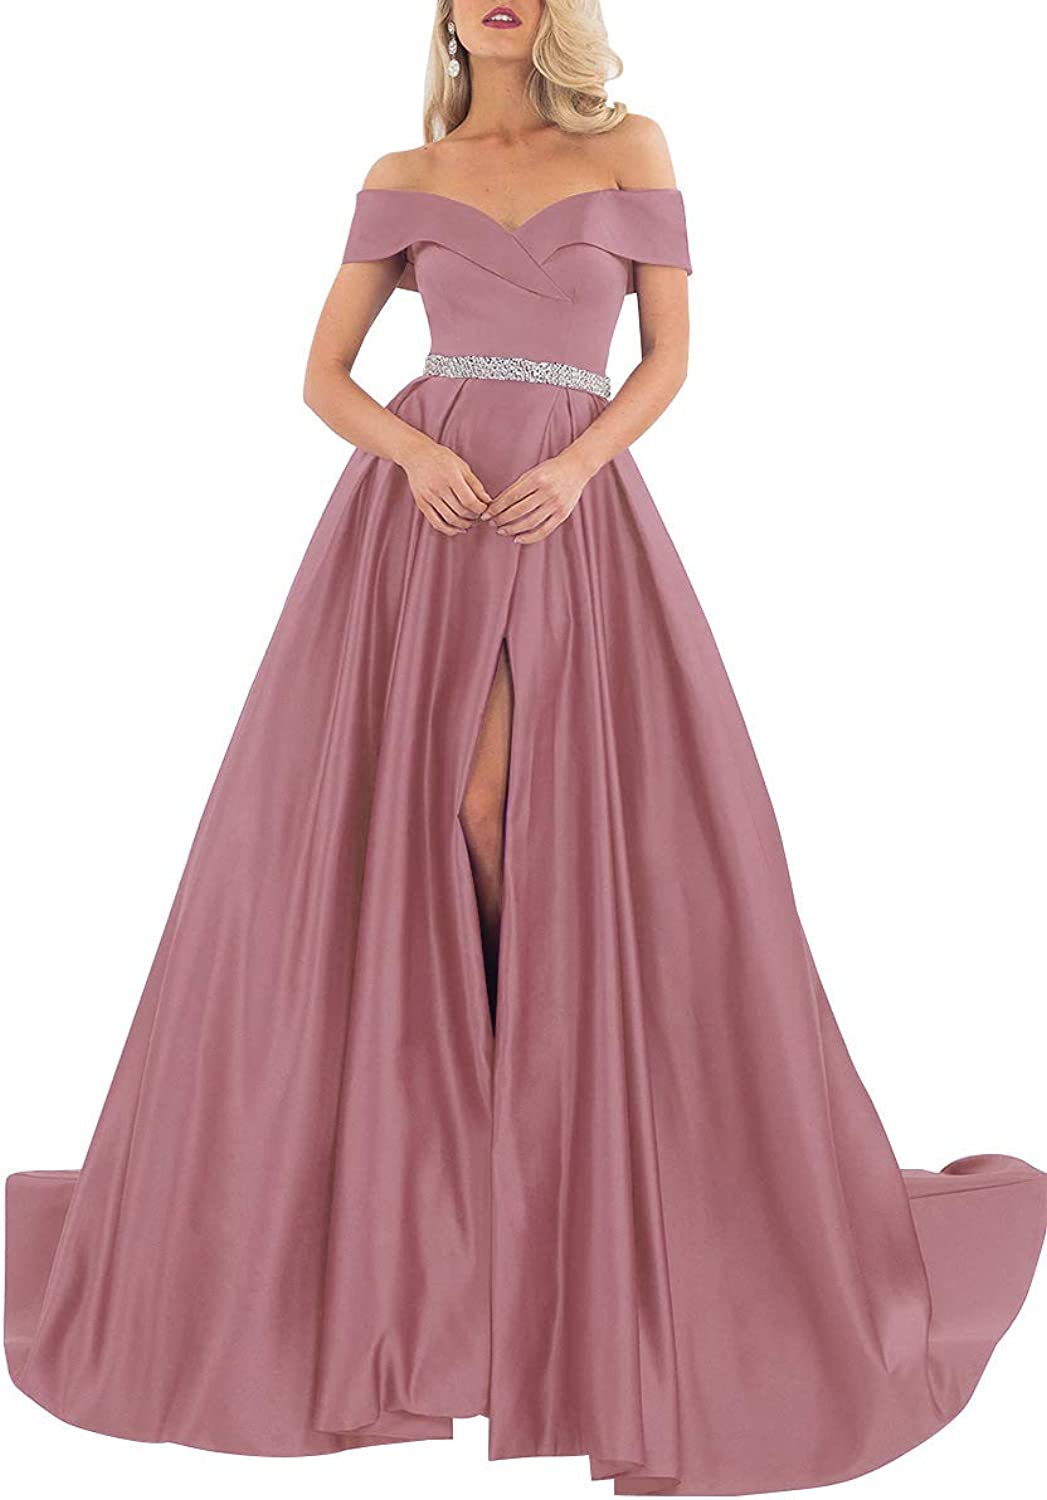 Beaded Prom Gowns Off Shoulder Satin Long Evening Party Dresses with Slit